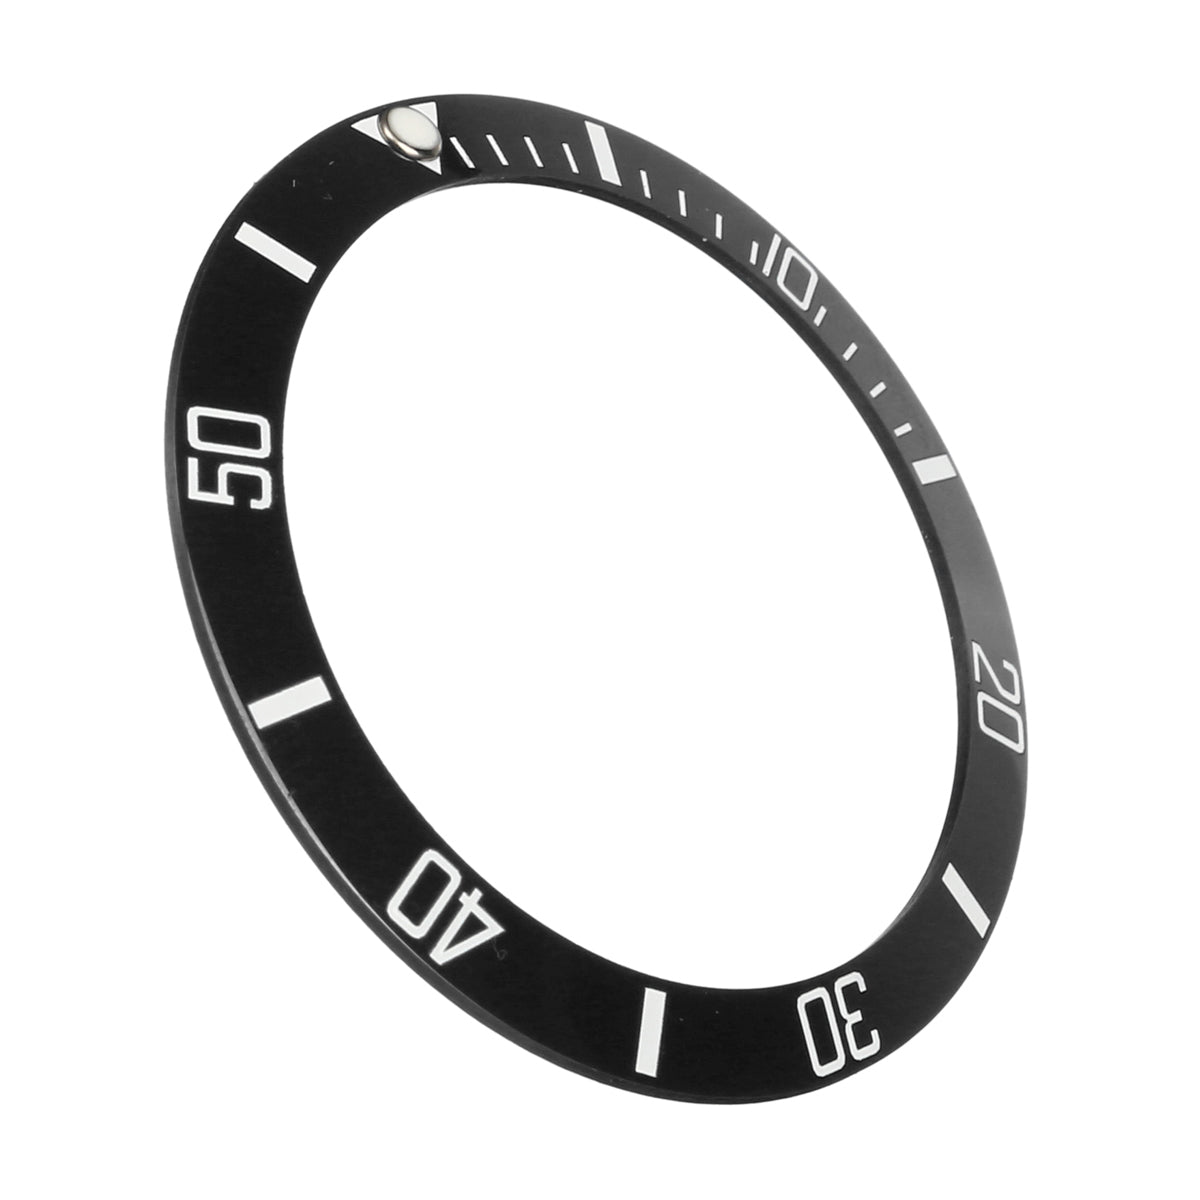 Watch Cover Ceramic Bezel Insert for SKX 007 009 011